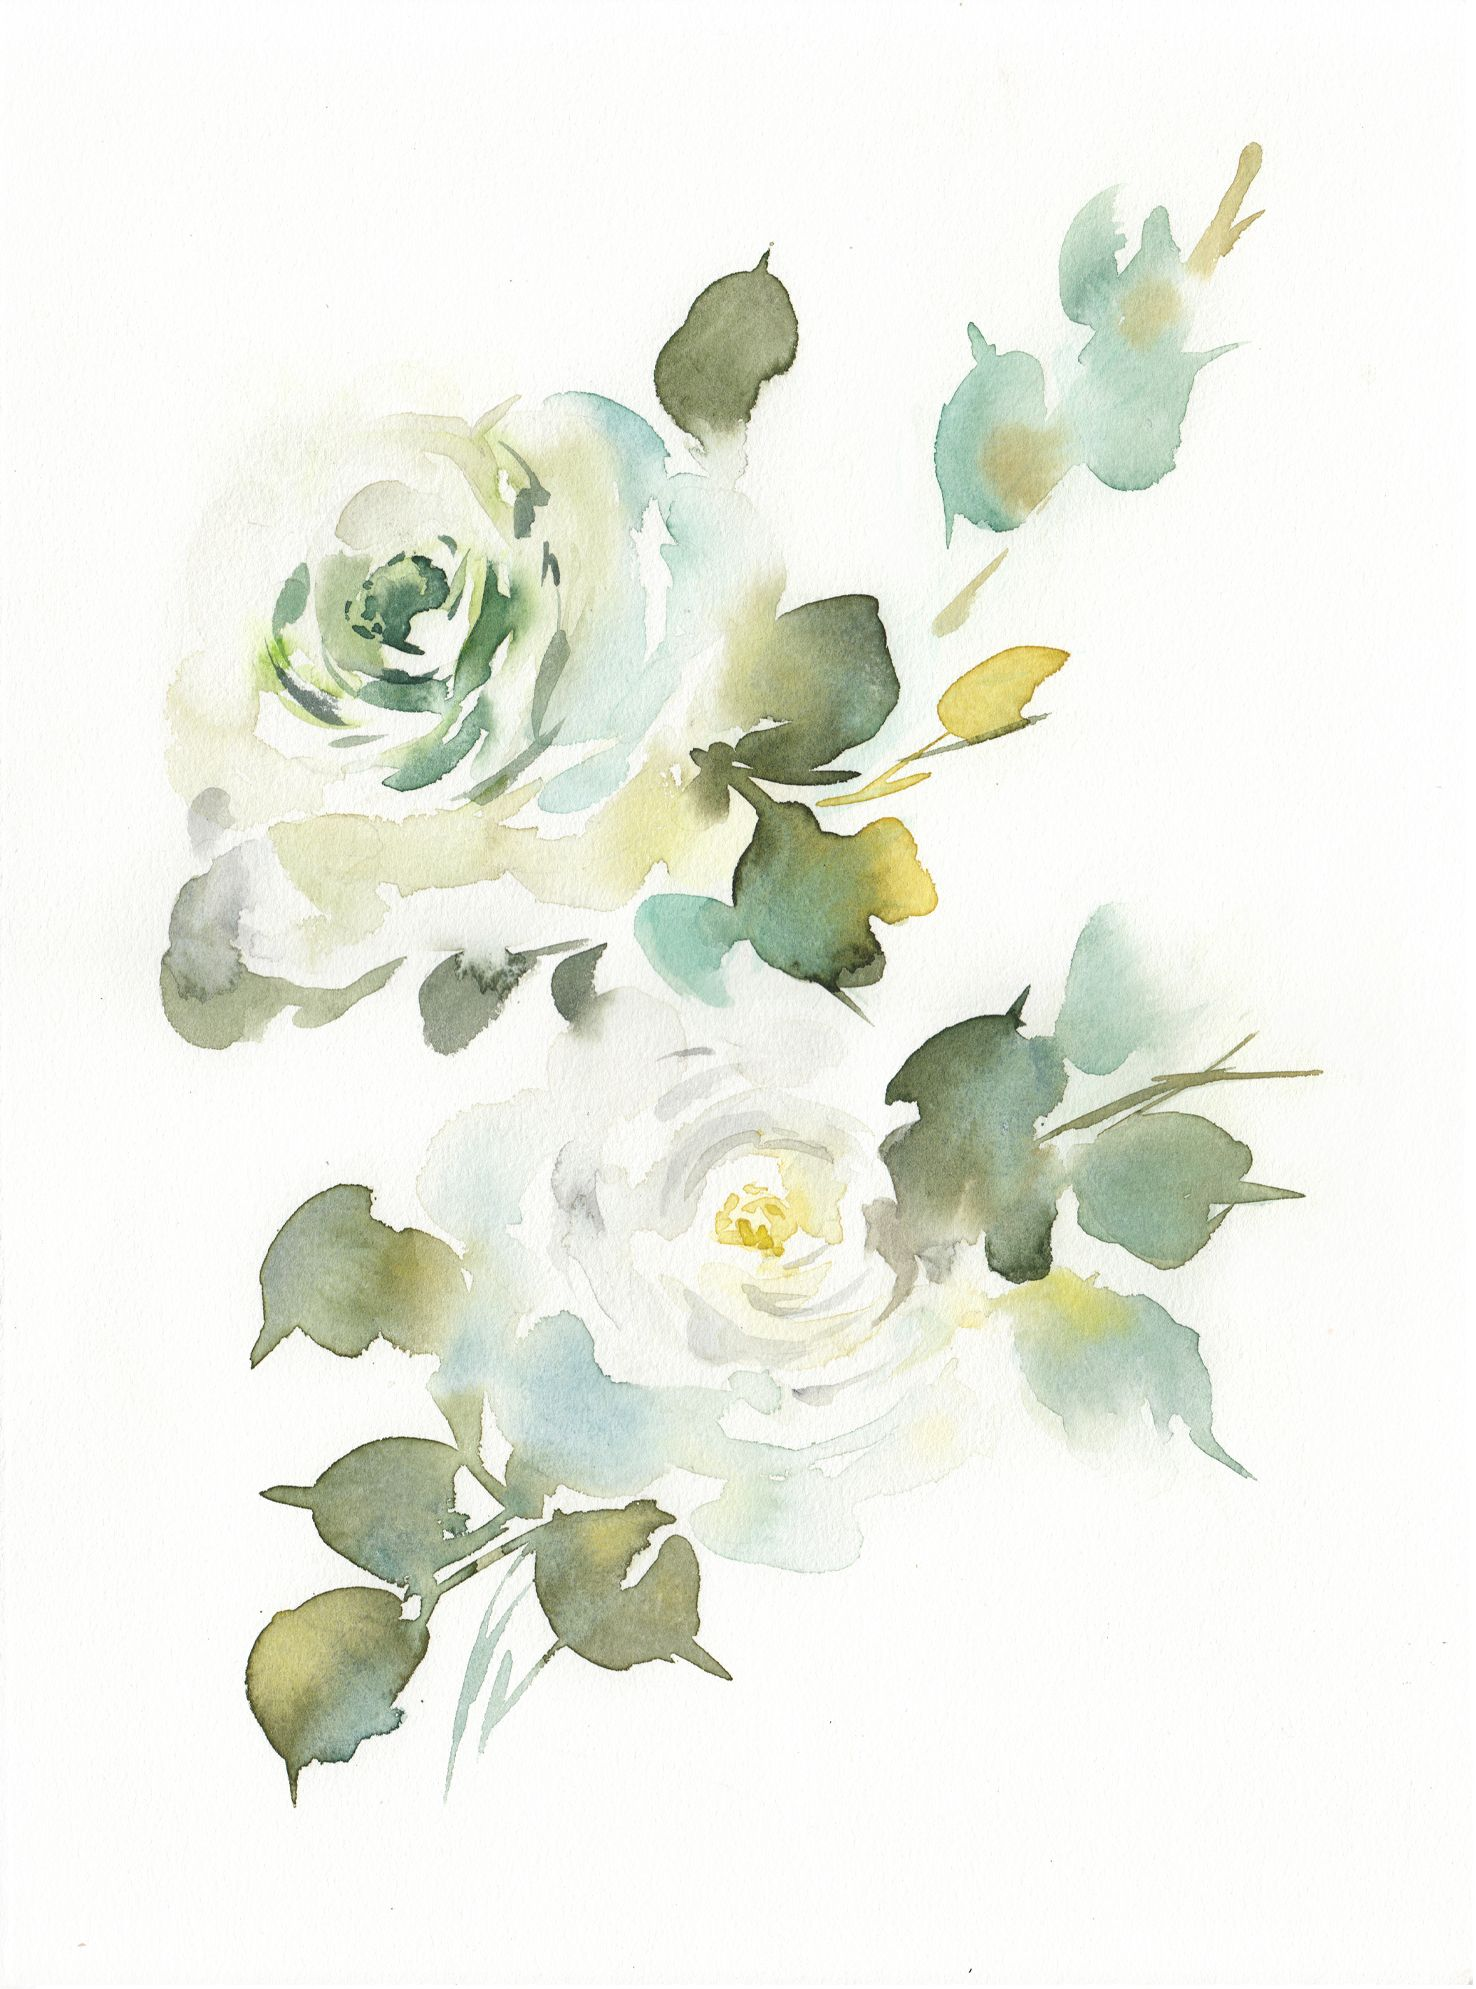 Printable Watercolor Roses Wall Art White Green Floral Botanical Watercolor Print Roses Painting Art Modern Flowers Art Instant Download In 2021 Loose Watercolor Flowers Floral Watercolor Watercolor Rose